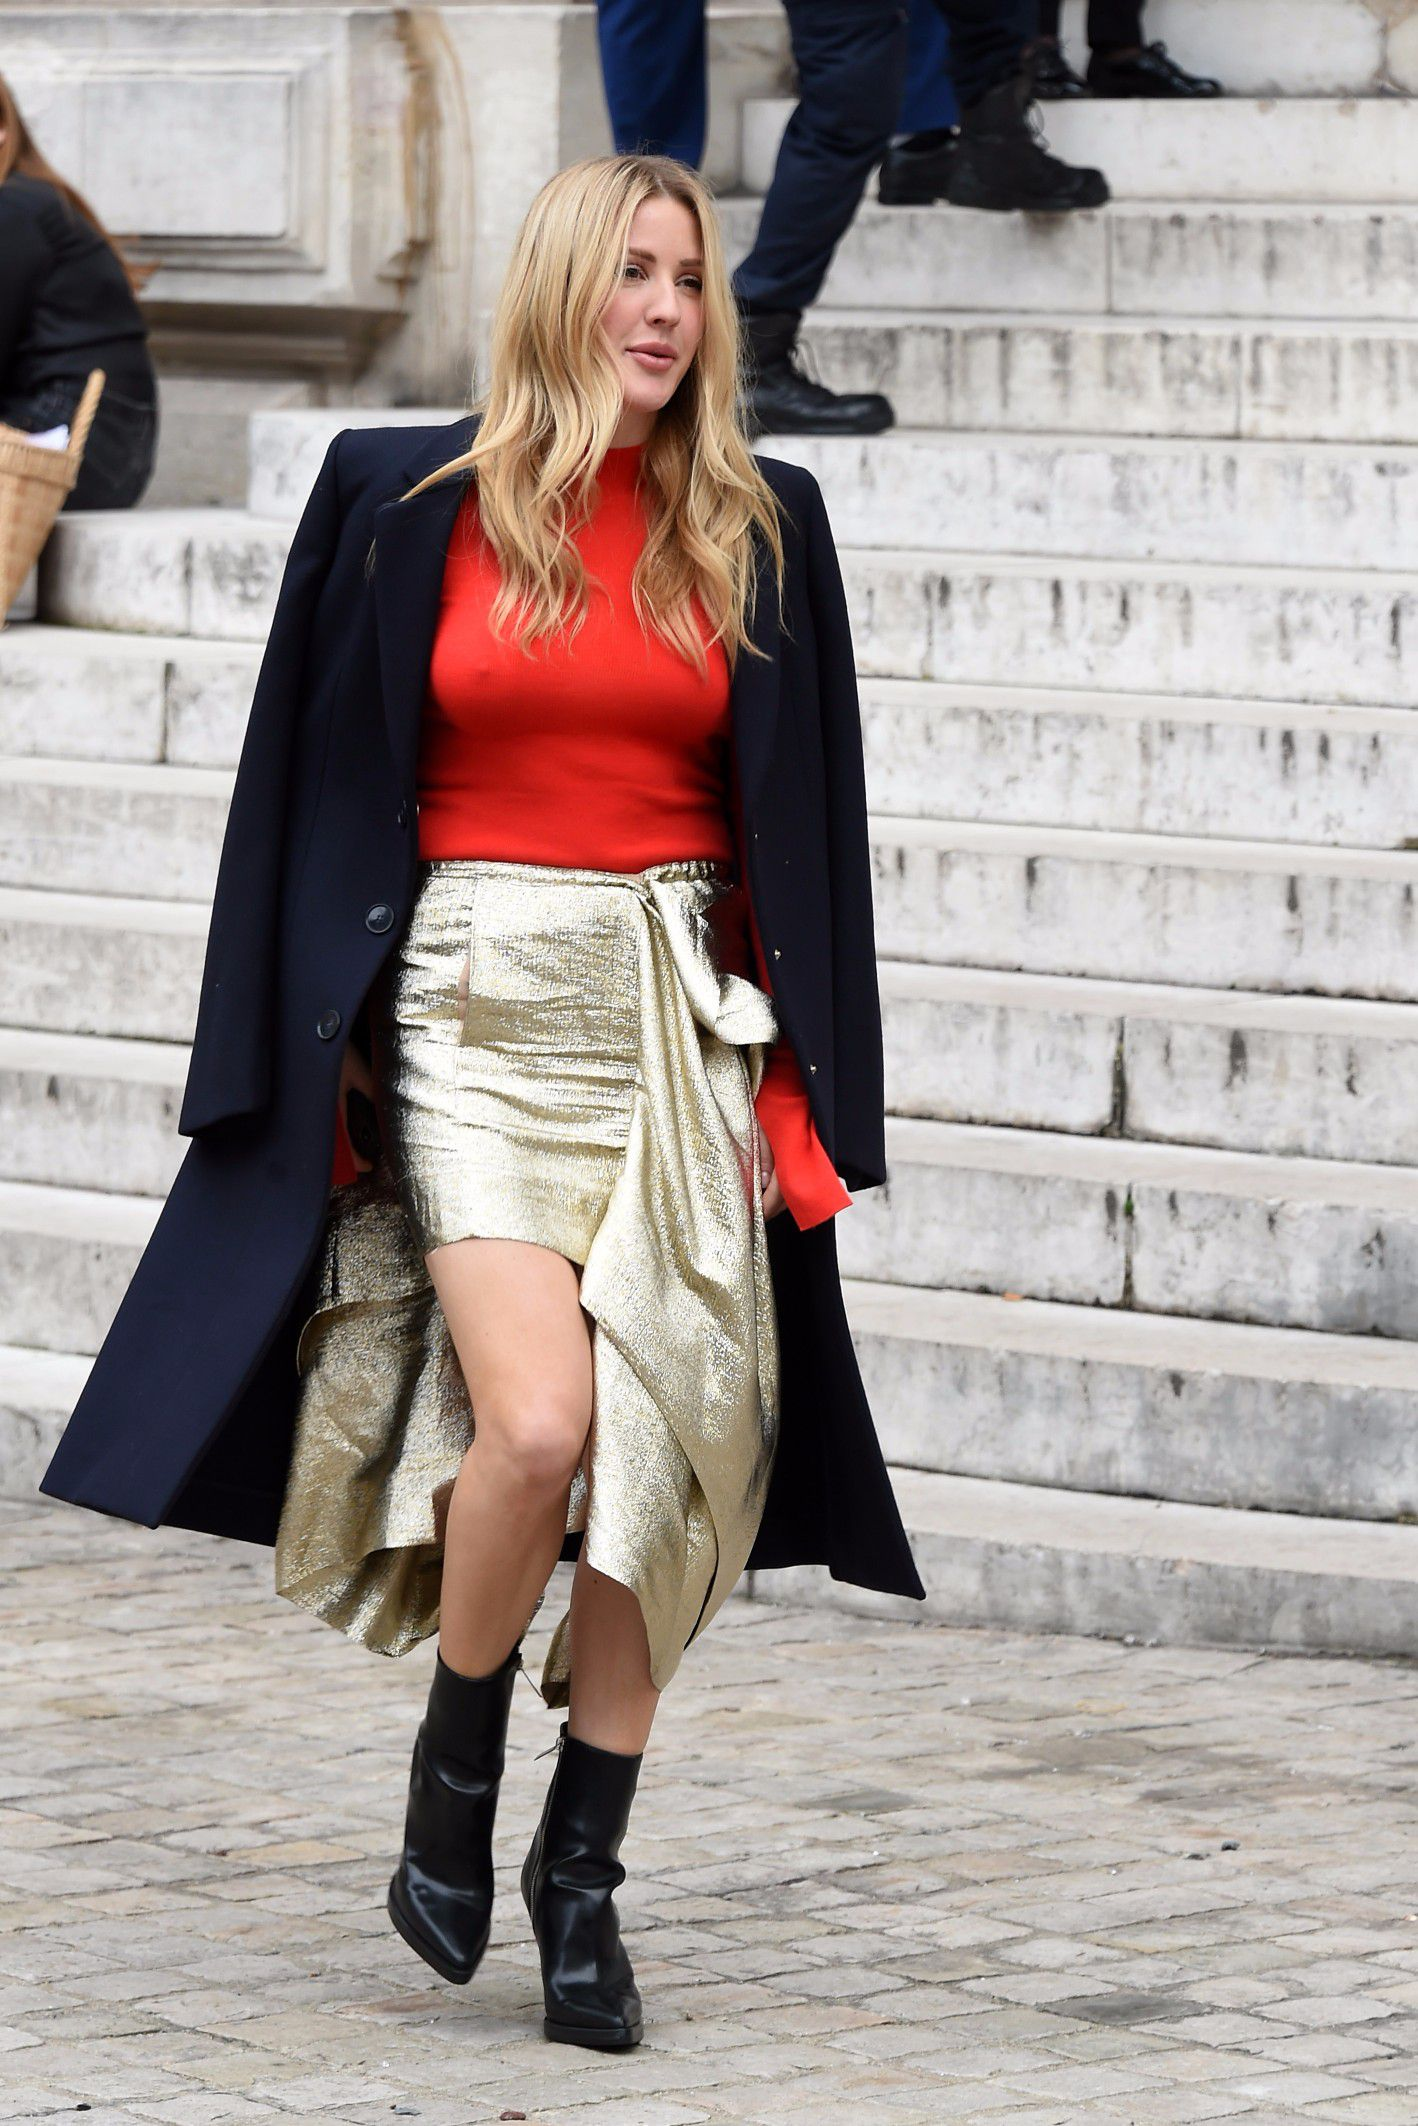 ellie-goulding-braless-in-see-thru-top-at-a-fashion-show-in-paris-2941